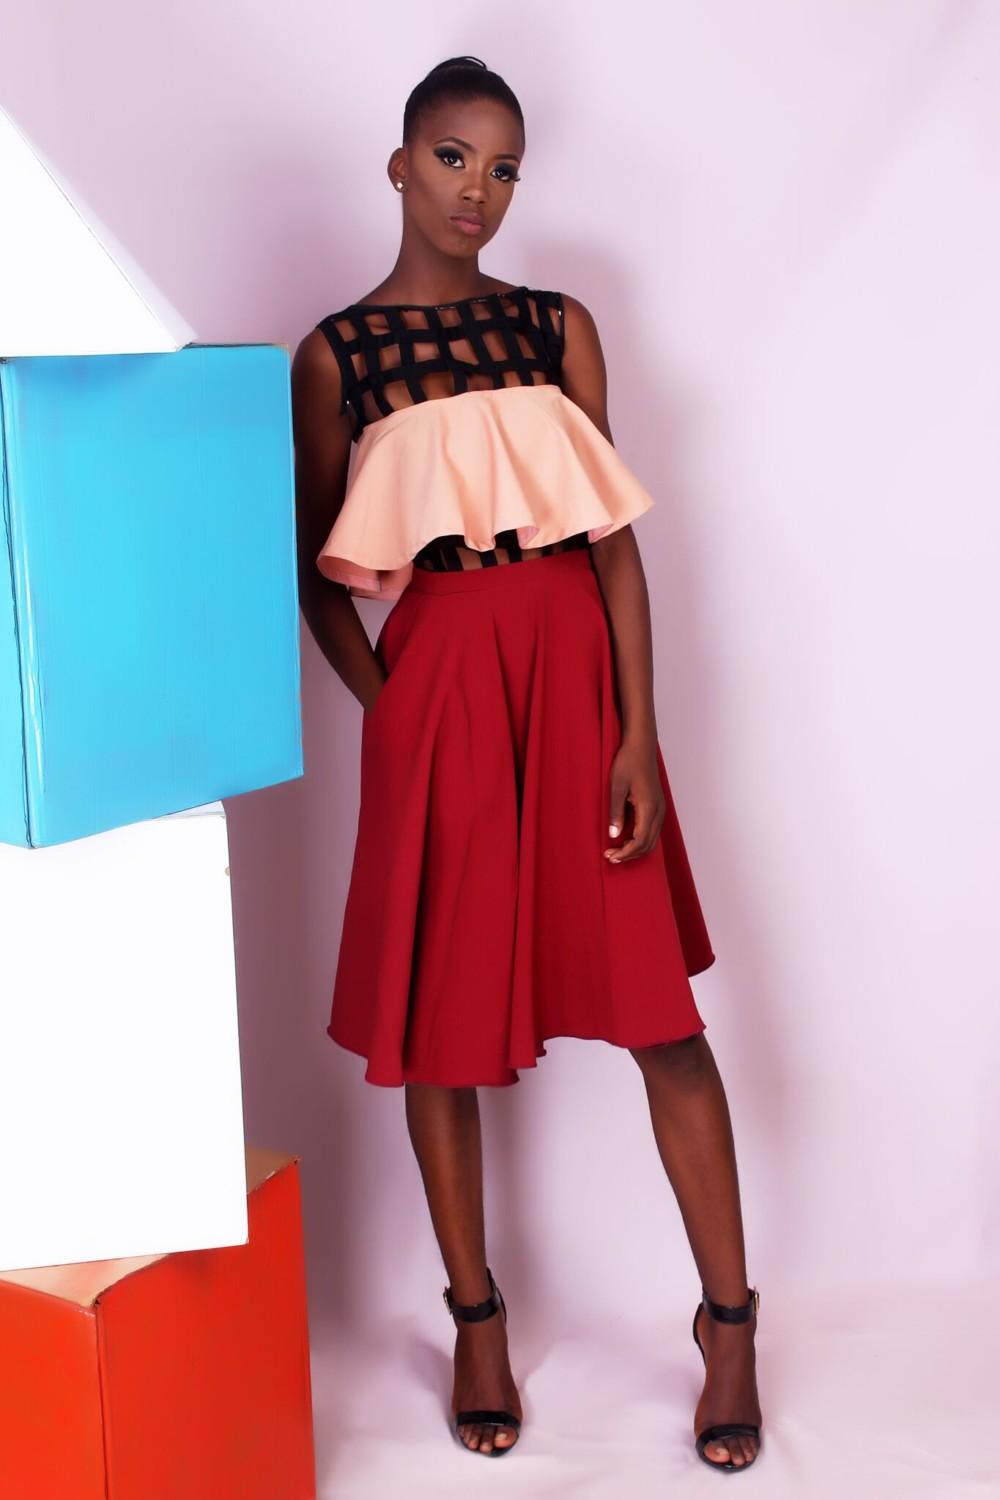 Nigerian Fashion Brand CeCe launches its Latest Lookbook titled 'Kandinsky'